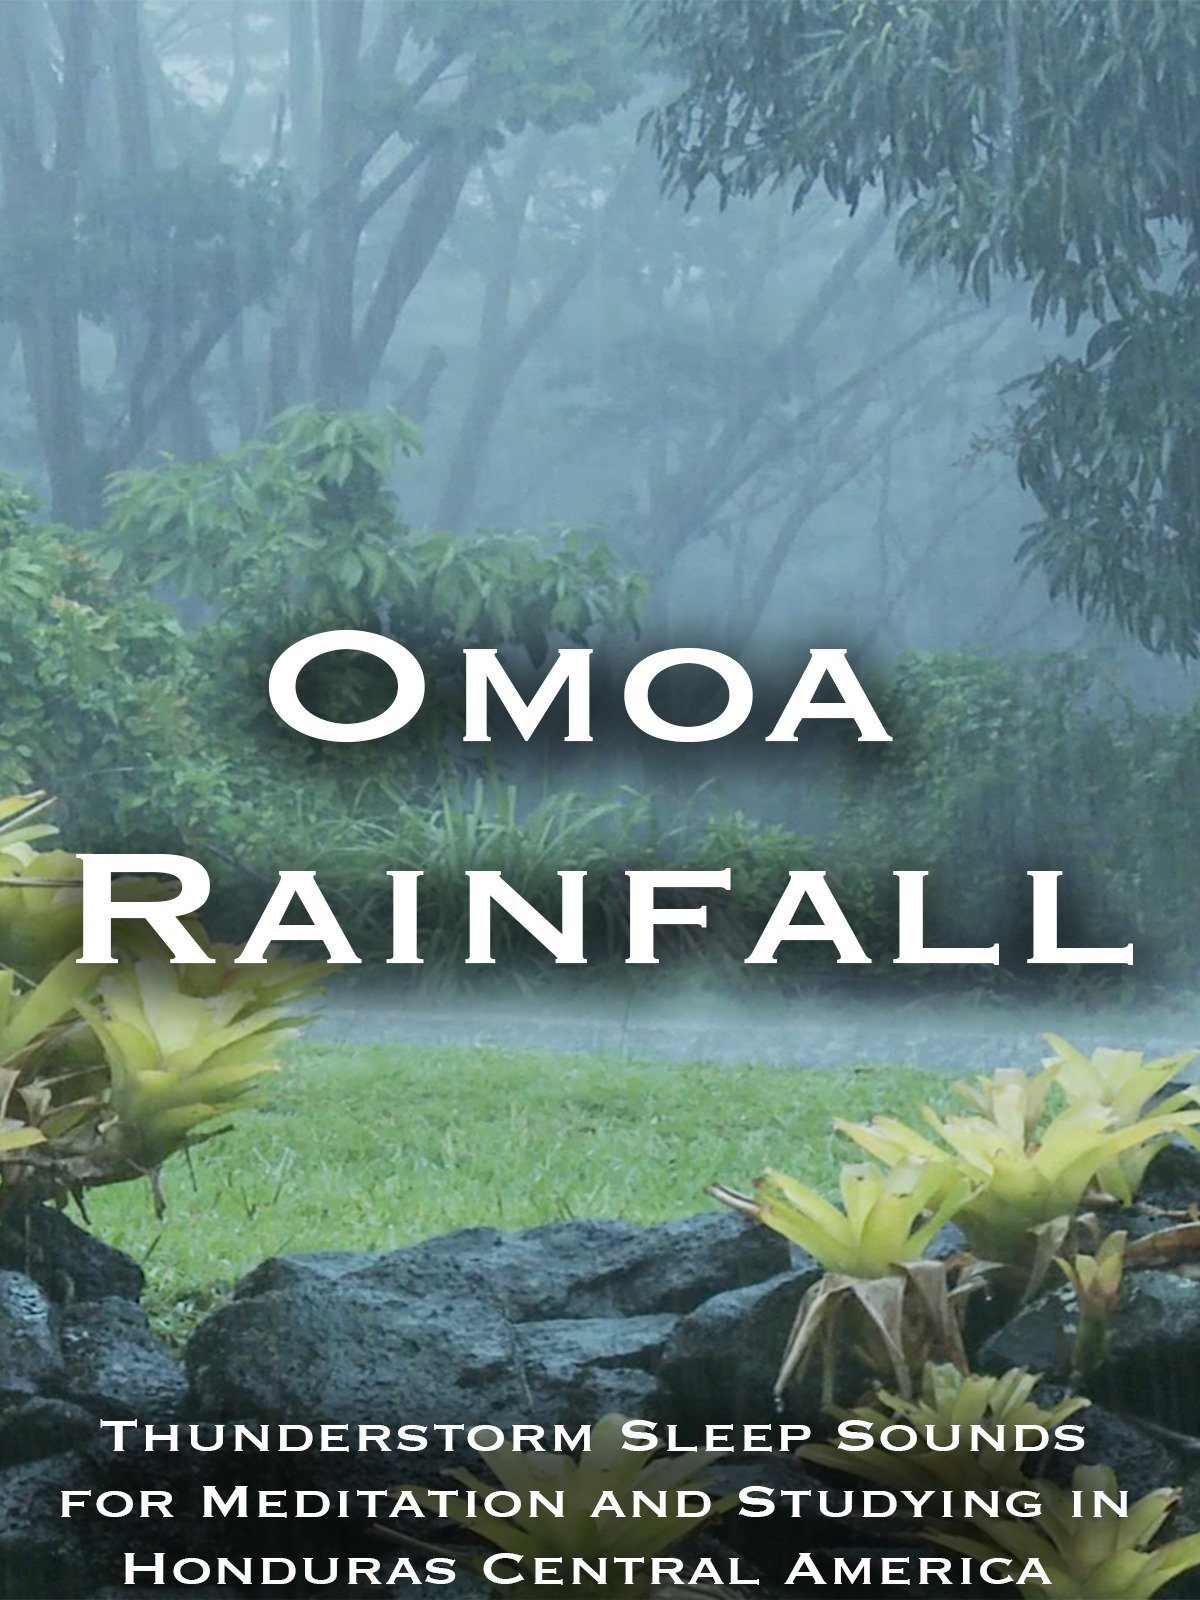 Omoa Rainfall Thunderstorm Sleep Sounds for Mediation and Studying in Honduras Central America